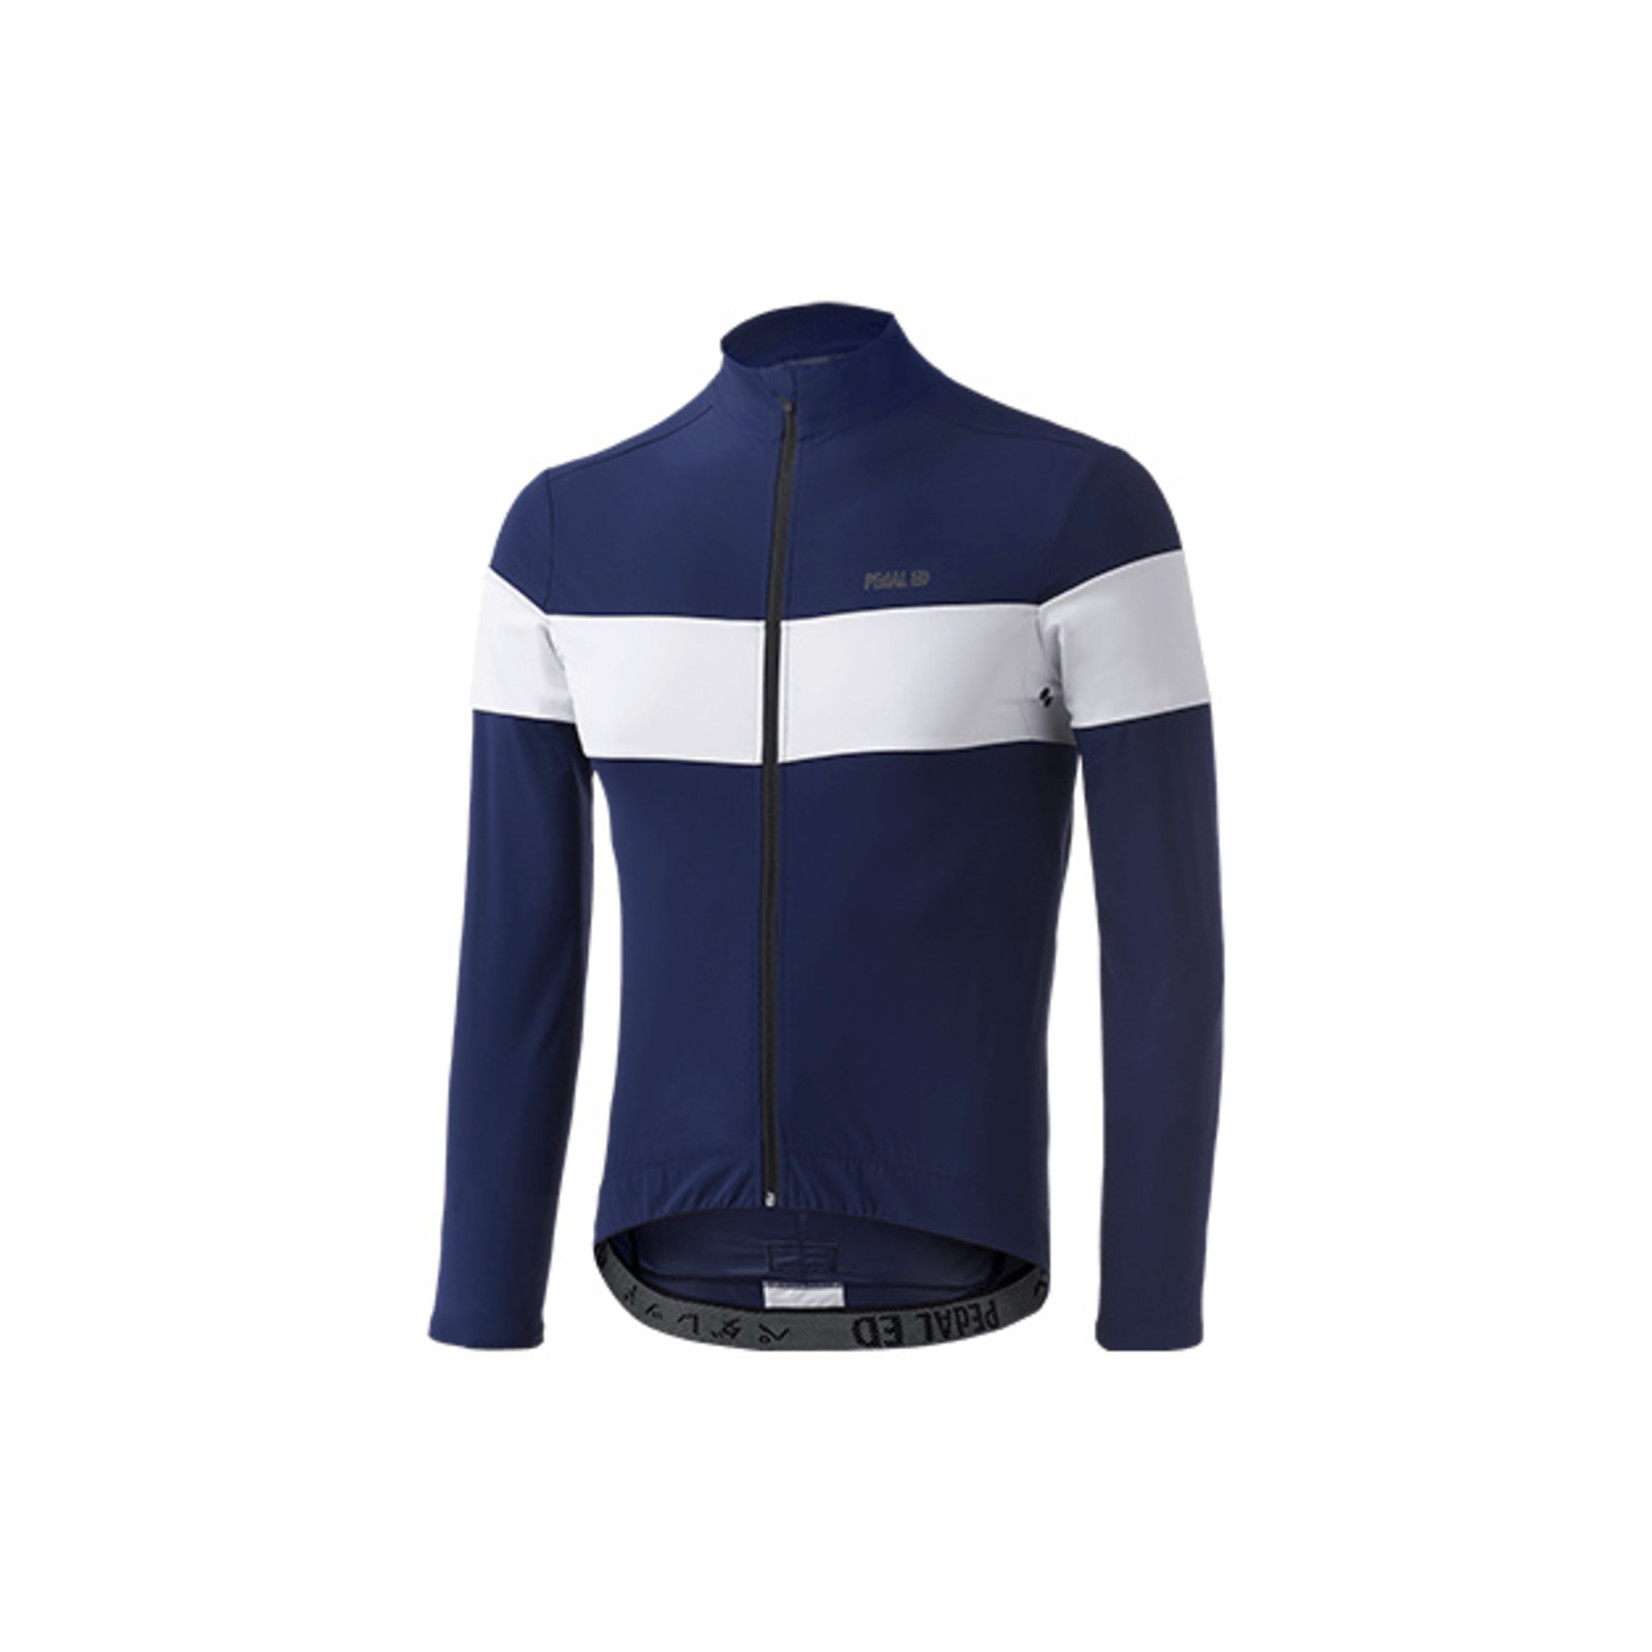 PEdALED PEdALED Nachi waterproof jacket L Navy